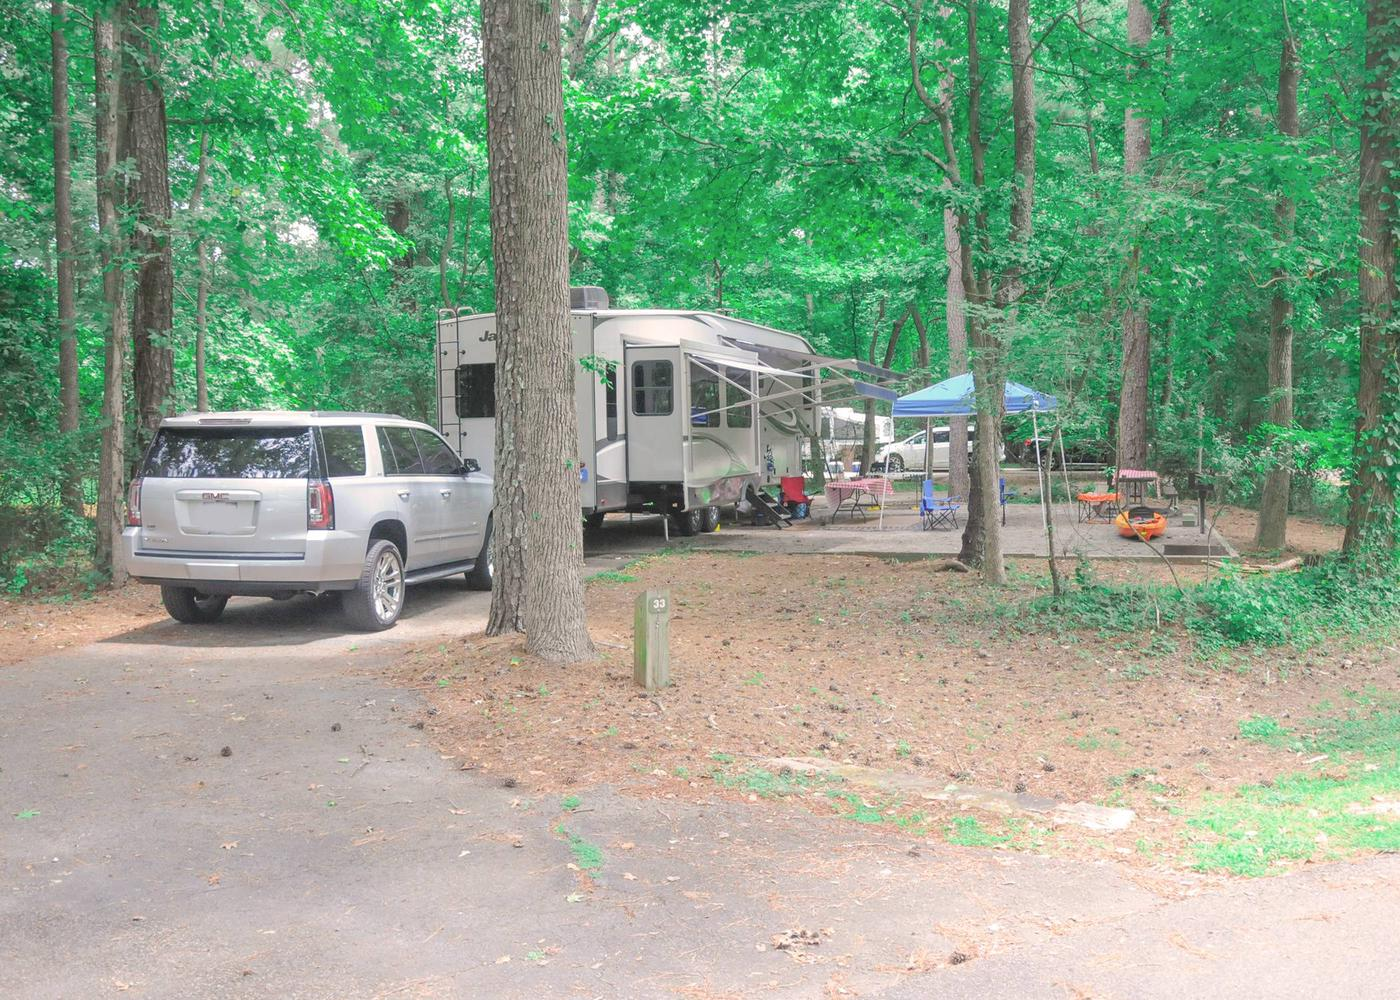 Pull-thru entrance, driveway slope, awning-side clearance.Victoria Campground, campsite 32.